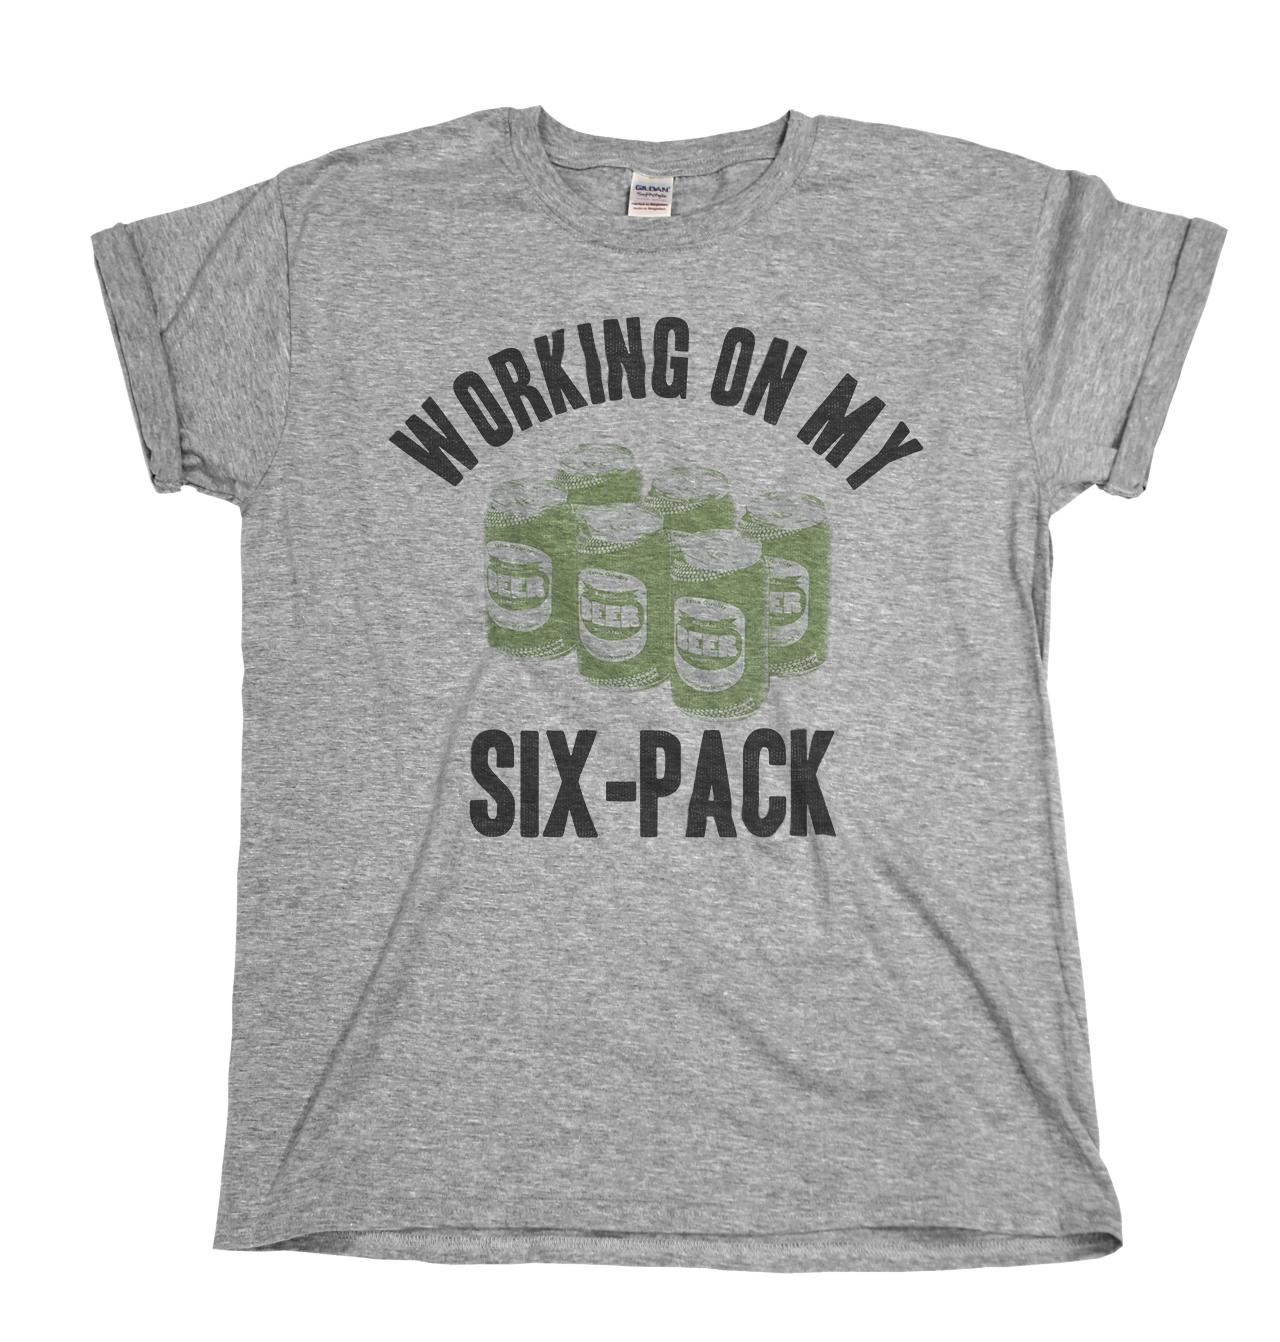 0e3c0c1fad2 Working On My Six Pack Funny Alcohol Gym Mens Ladies T Shirt Christmas Gift  Online T Shirt Buy Joke T Shirt From Rutmerch